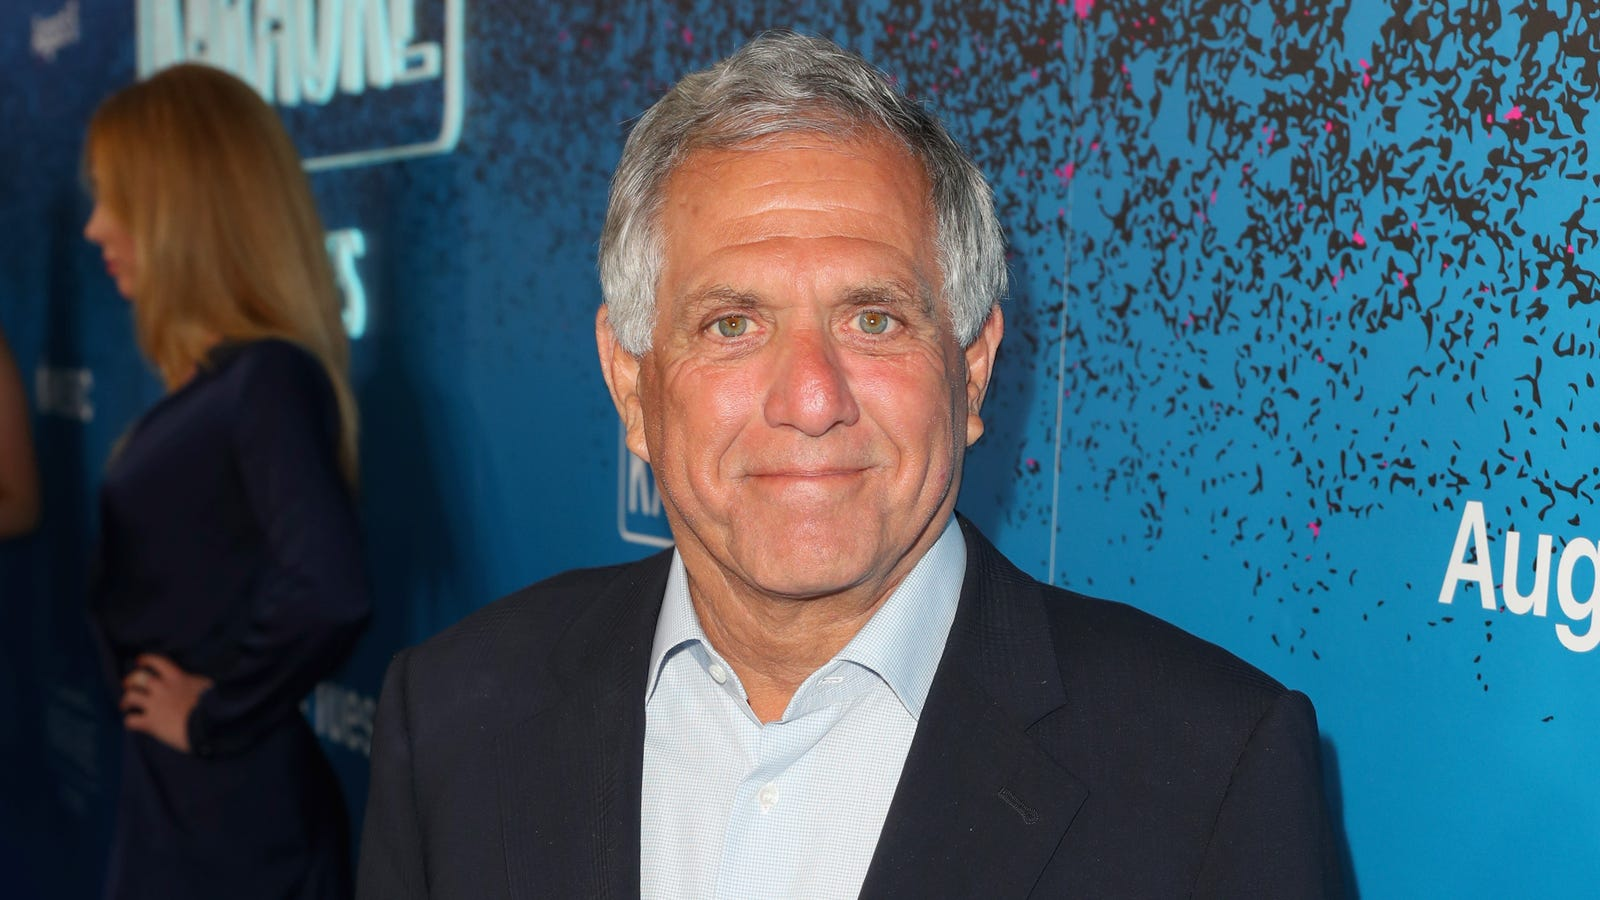 Les Moonves now expected to leave CBS as new assault allegations surface